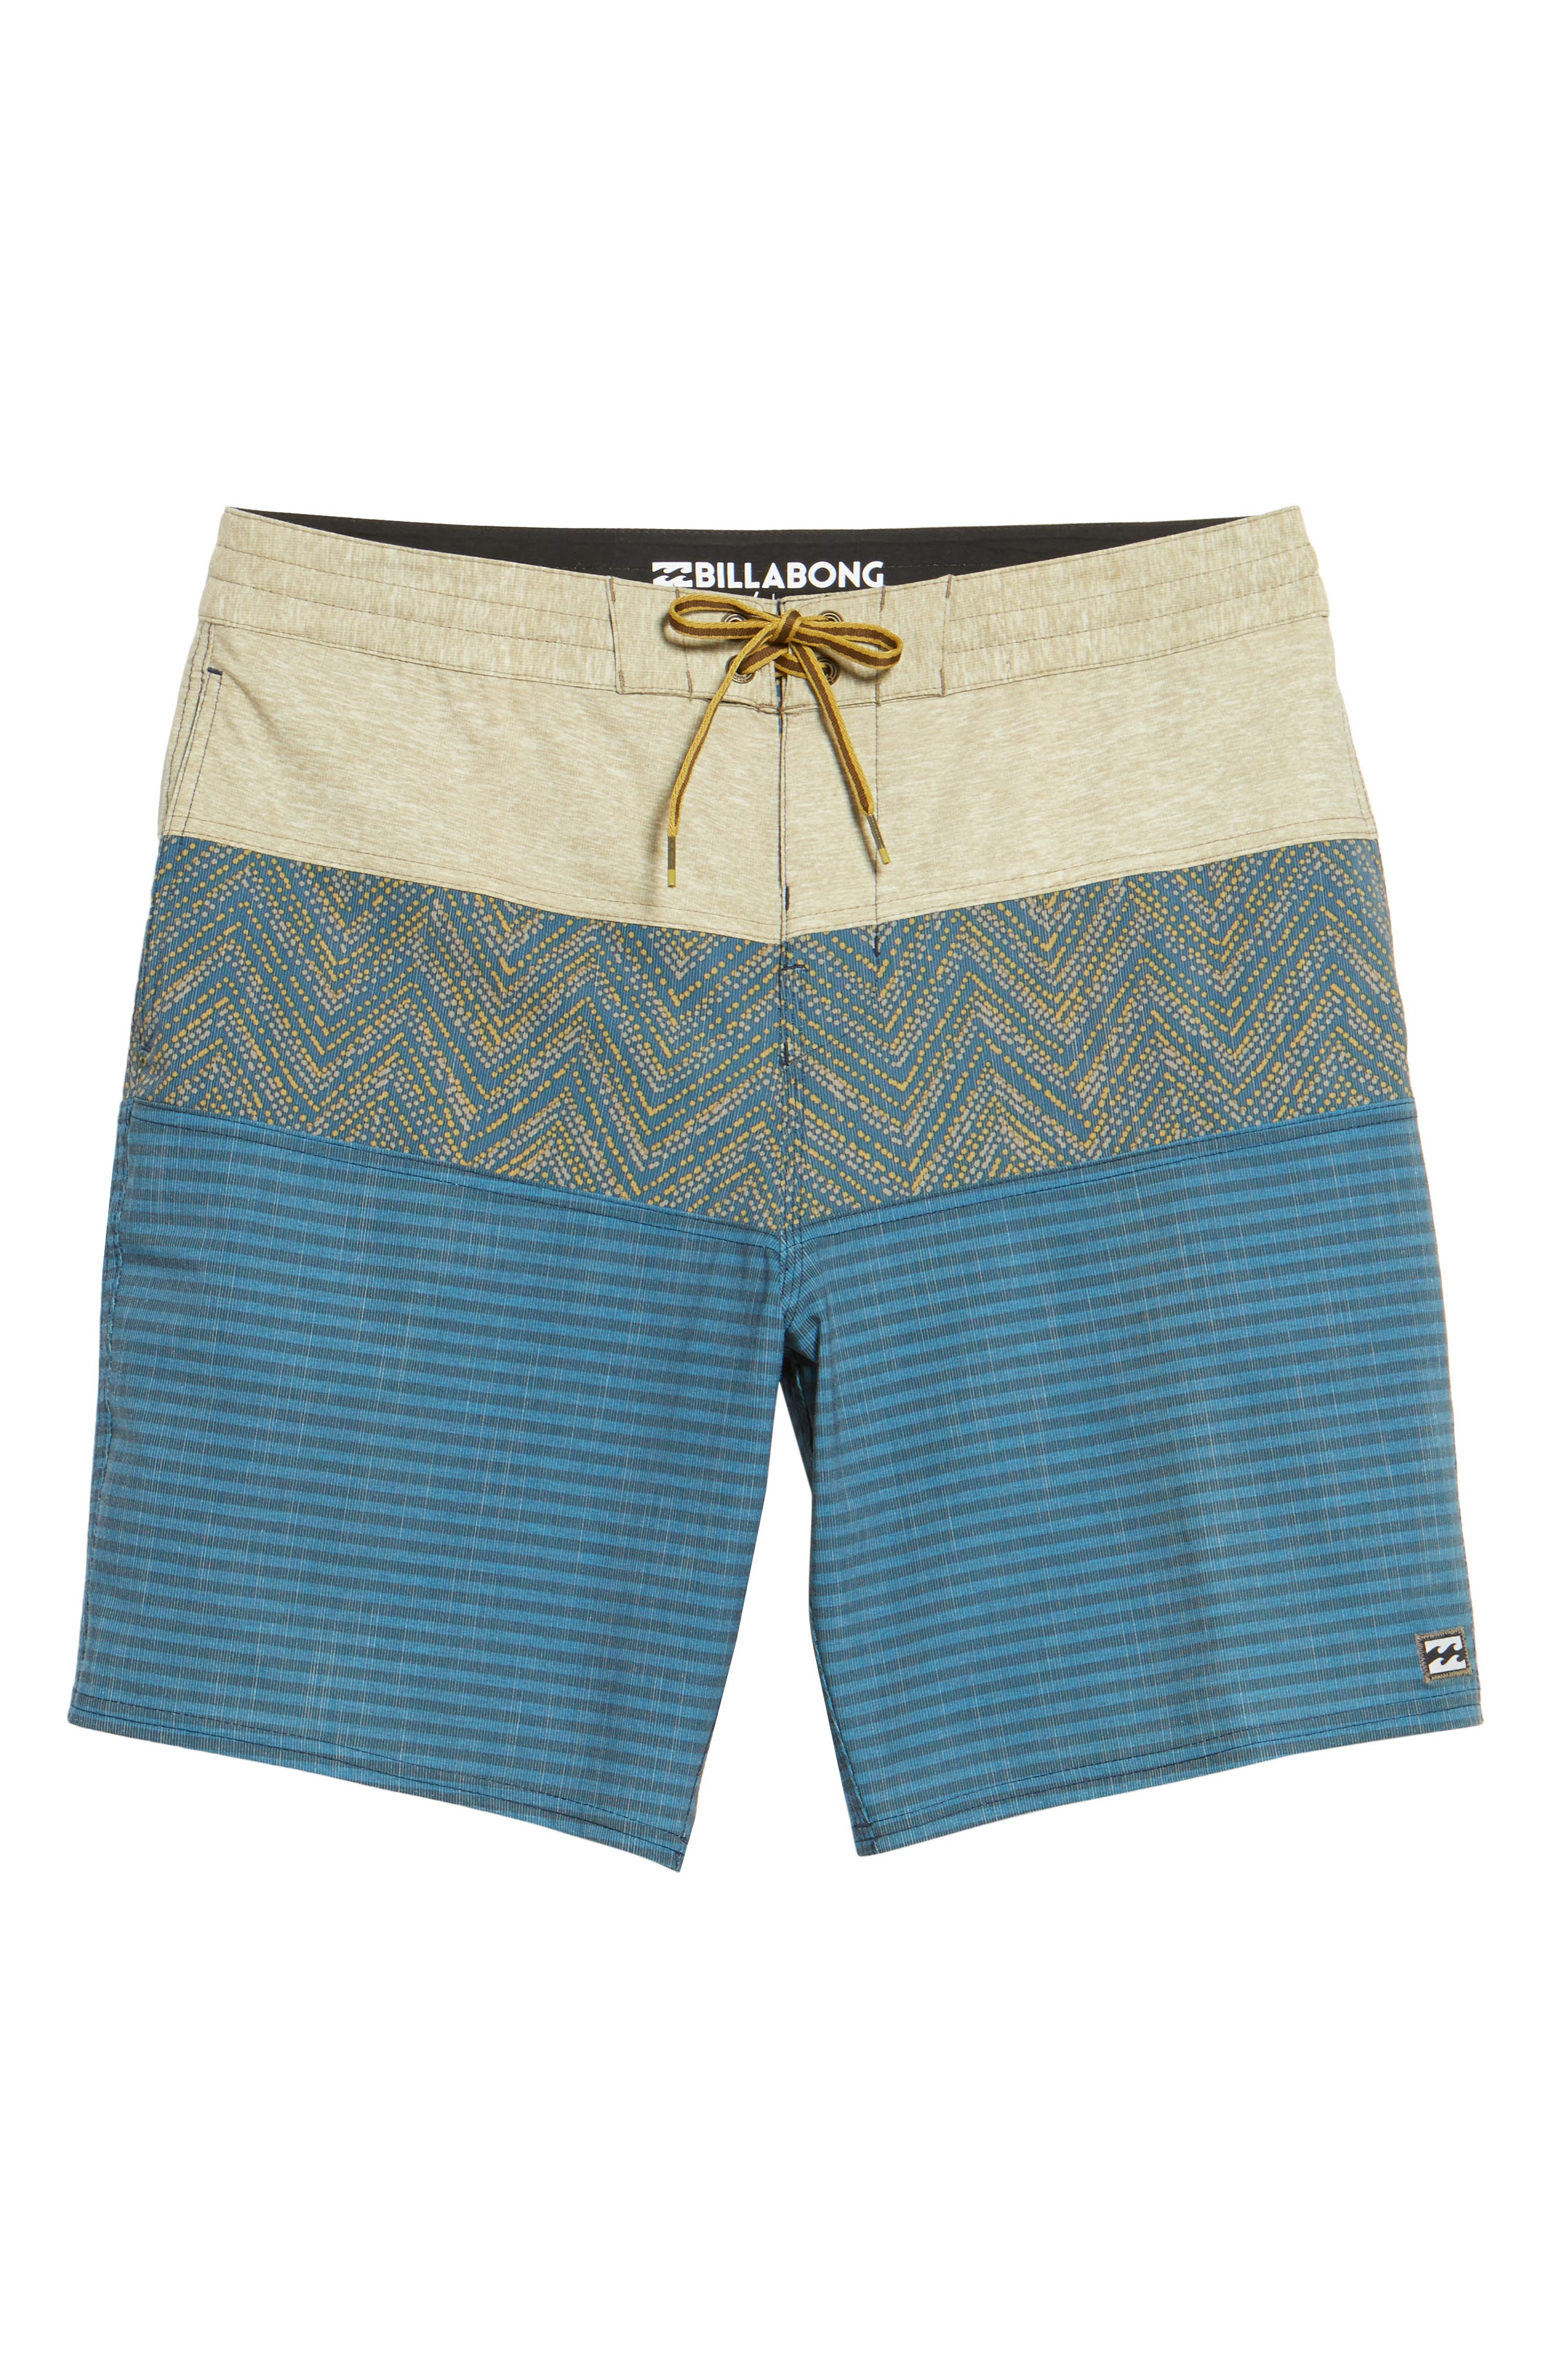 Tribong LT Board Shorts,                             Alternate thumbnail 18, color,